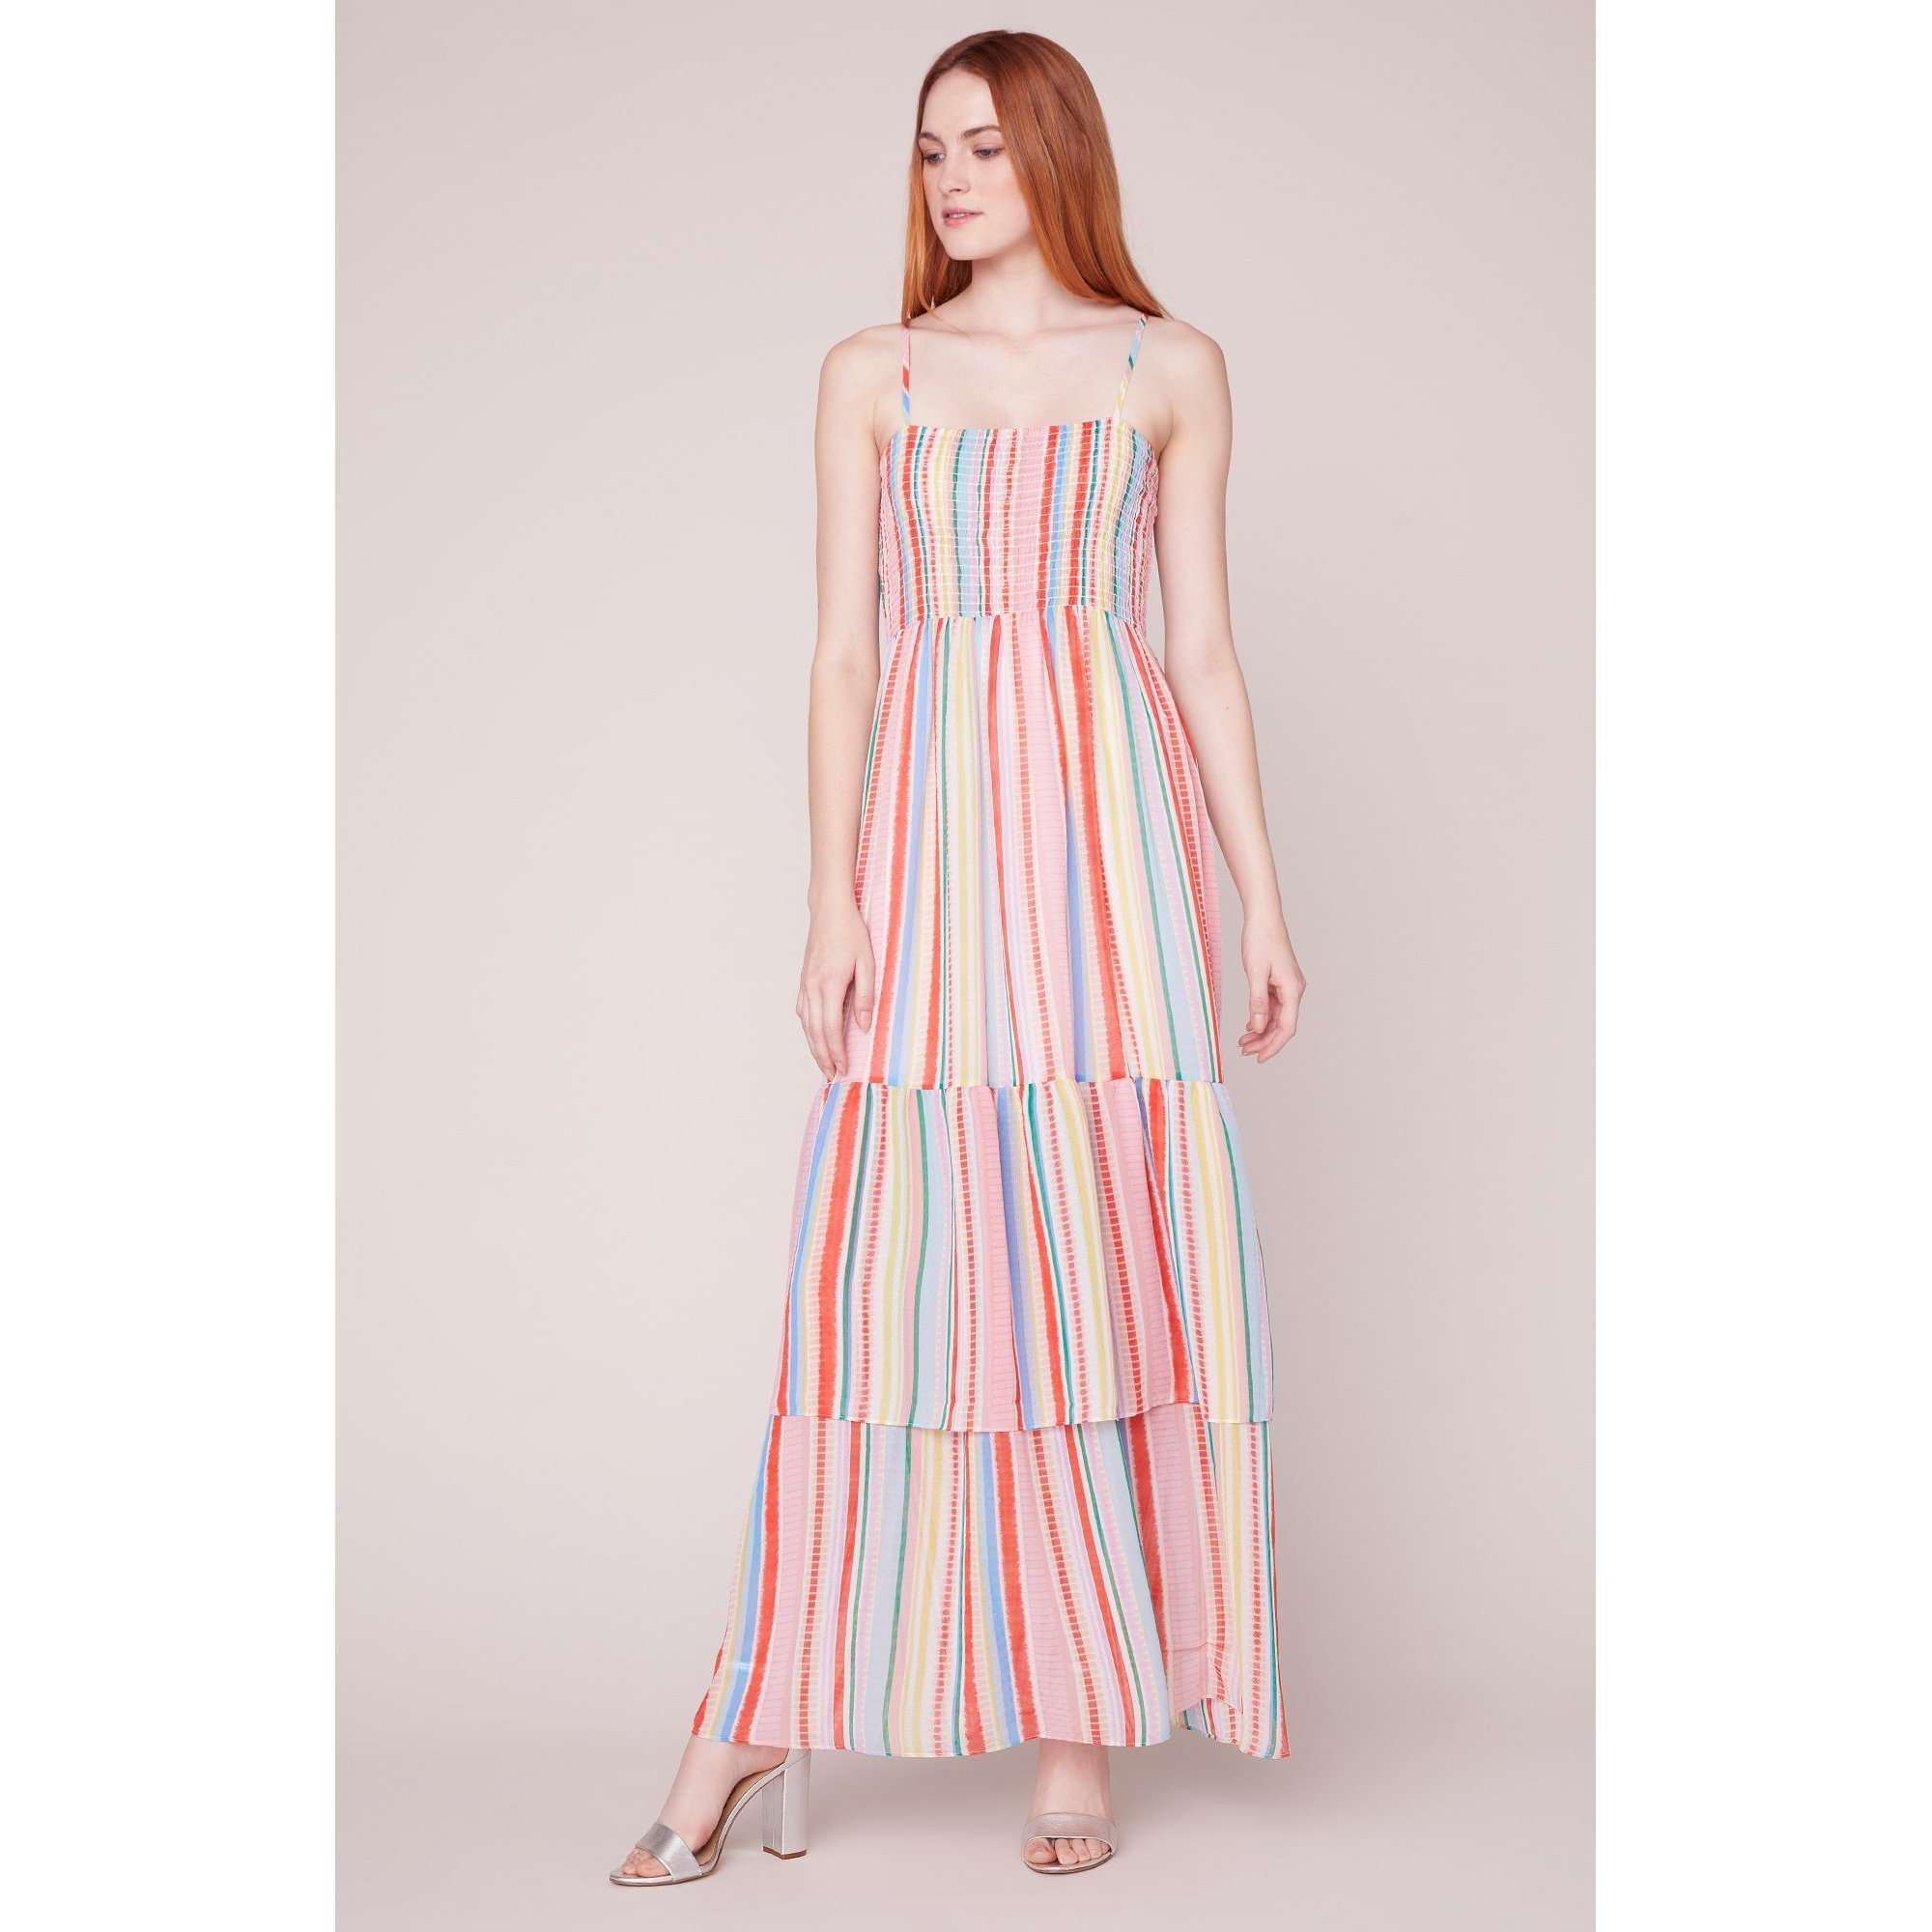 8.28 Boutique:Jack by BB Dakota,Jack by BB Dakota True Colors Maxi Dress,Dress